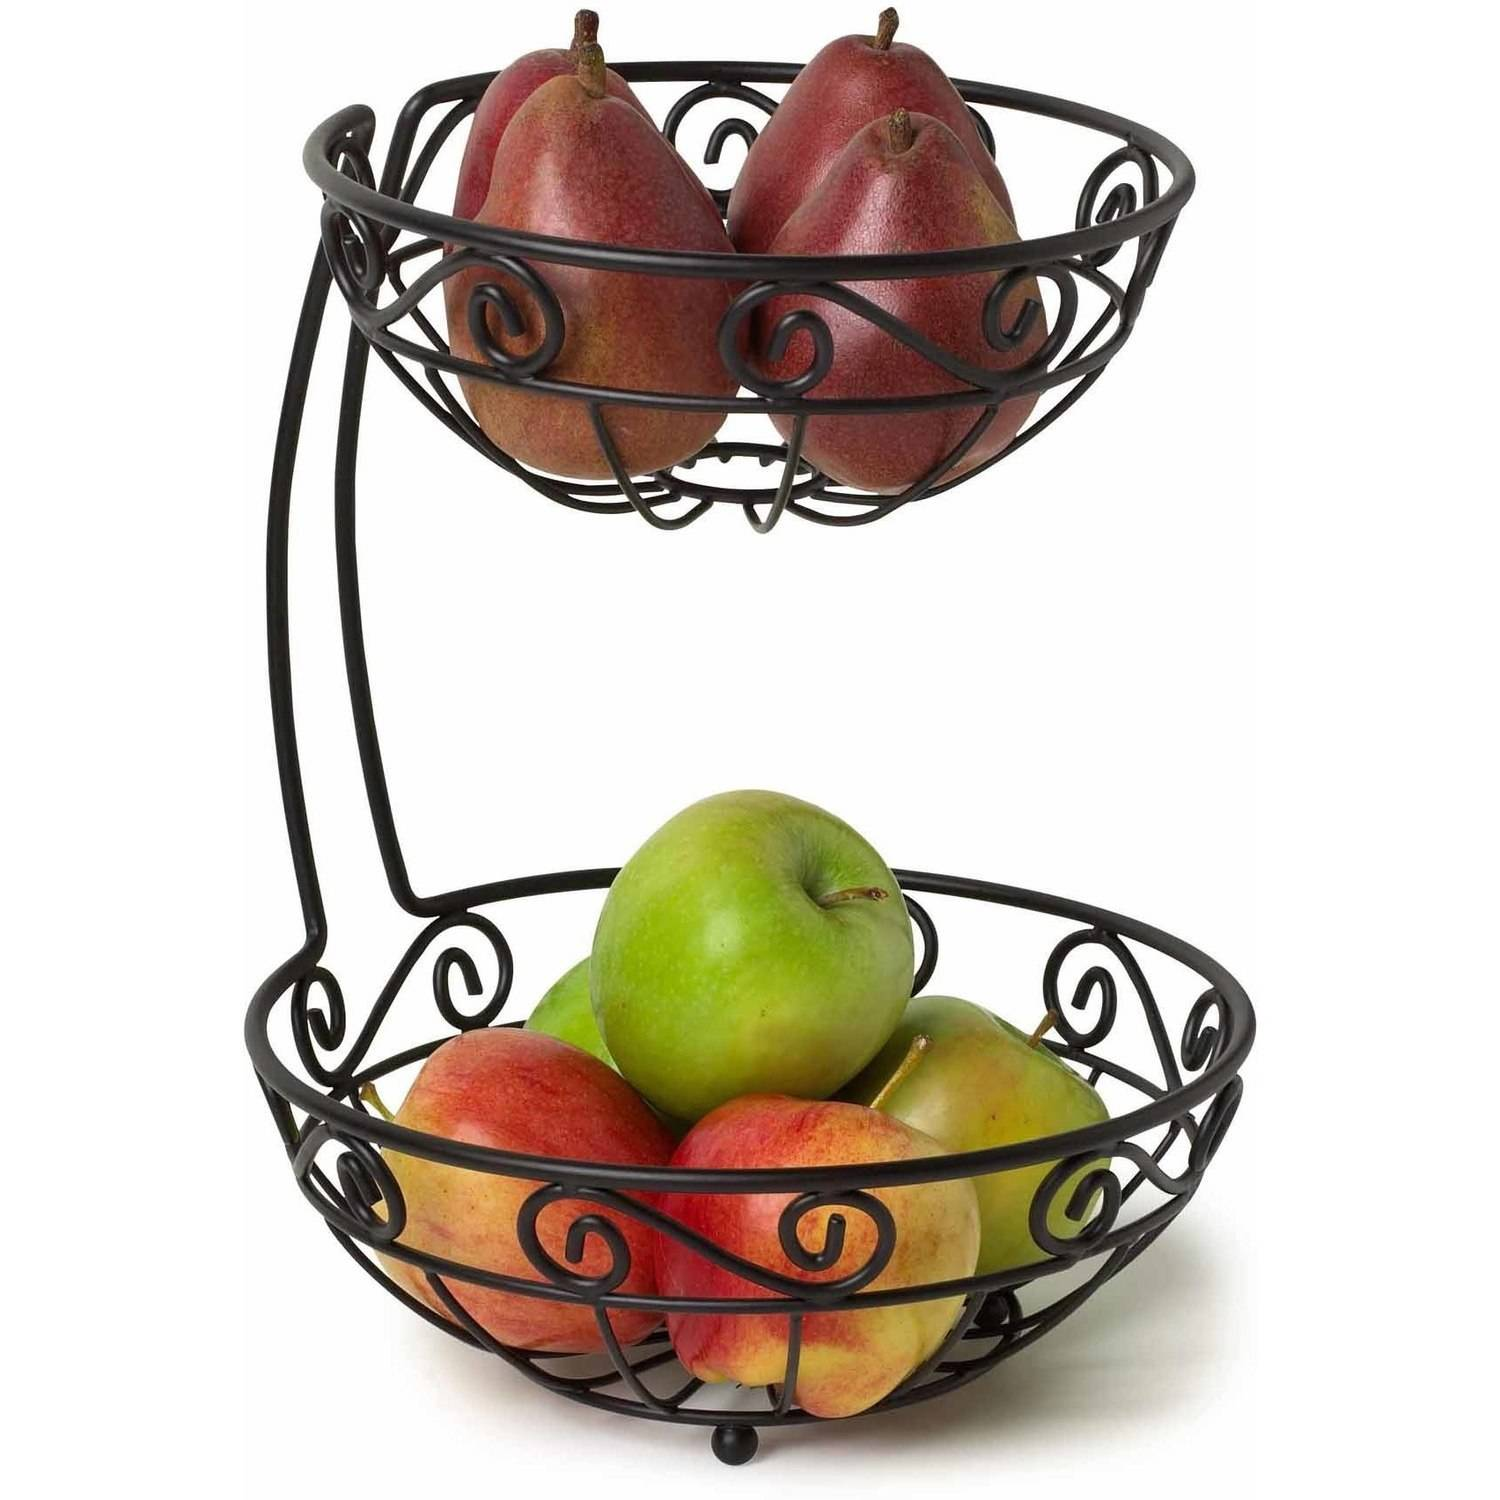 Spectrum Scroll Arched 2-Tier Fruit Server, Black